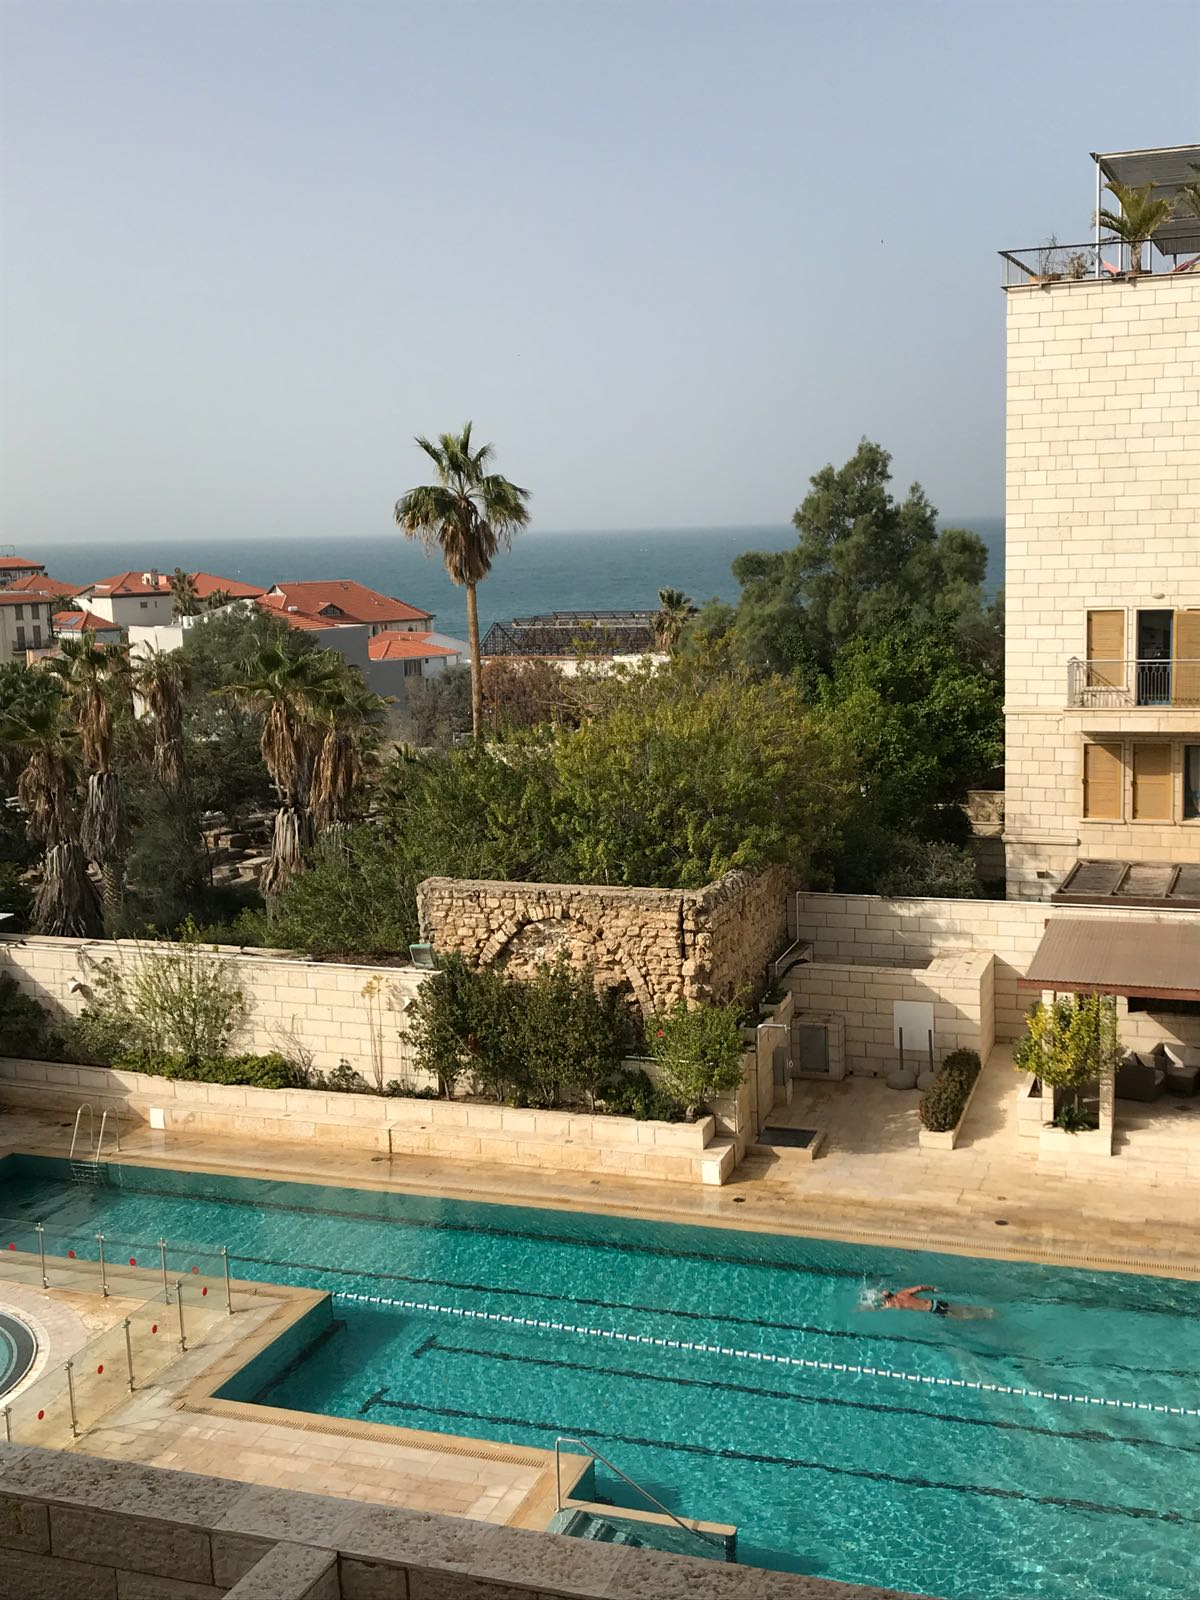 2 Bedroom Apartment for Sale in the Andromeda Complex in Old Jaffa